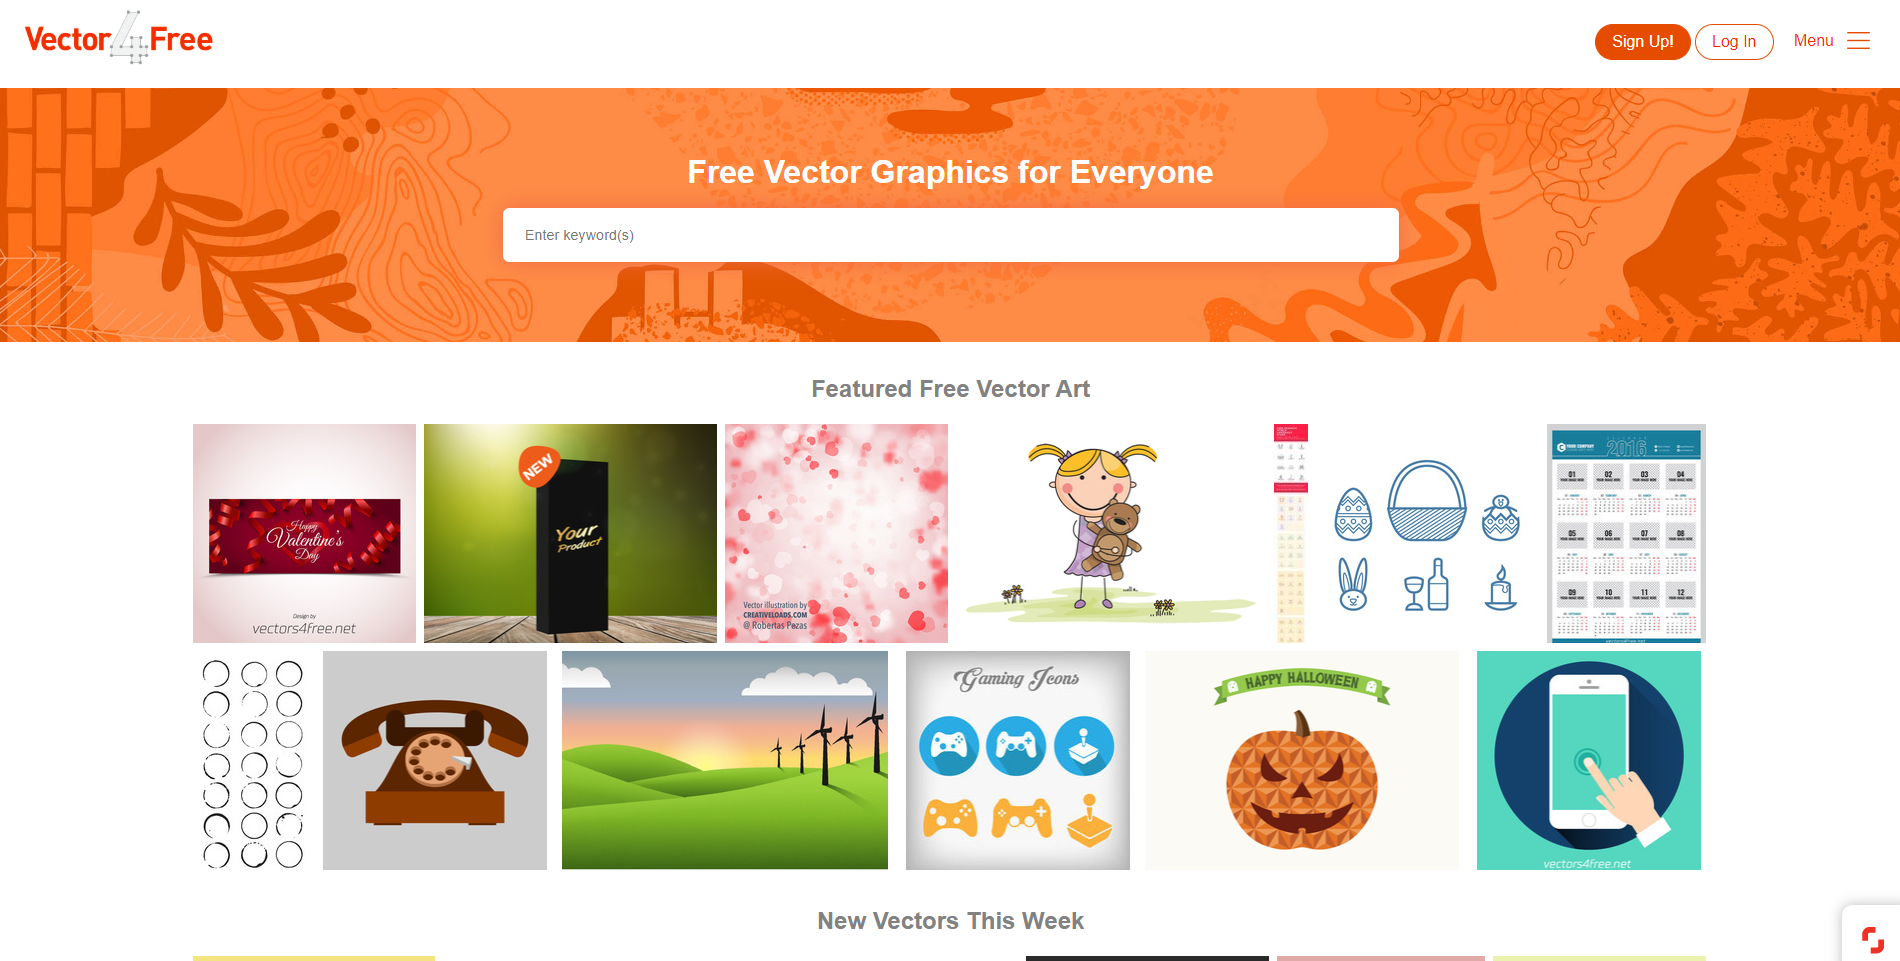 vectors 4 free Murfreesboro TN website free vectors